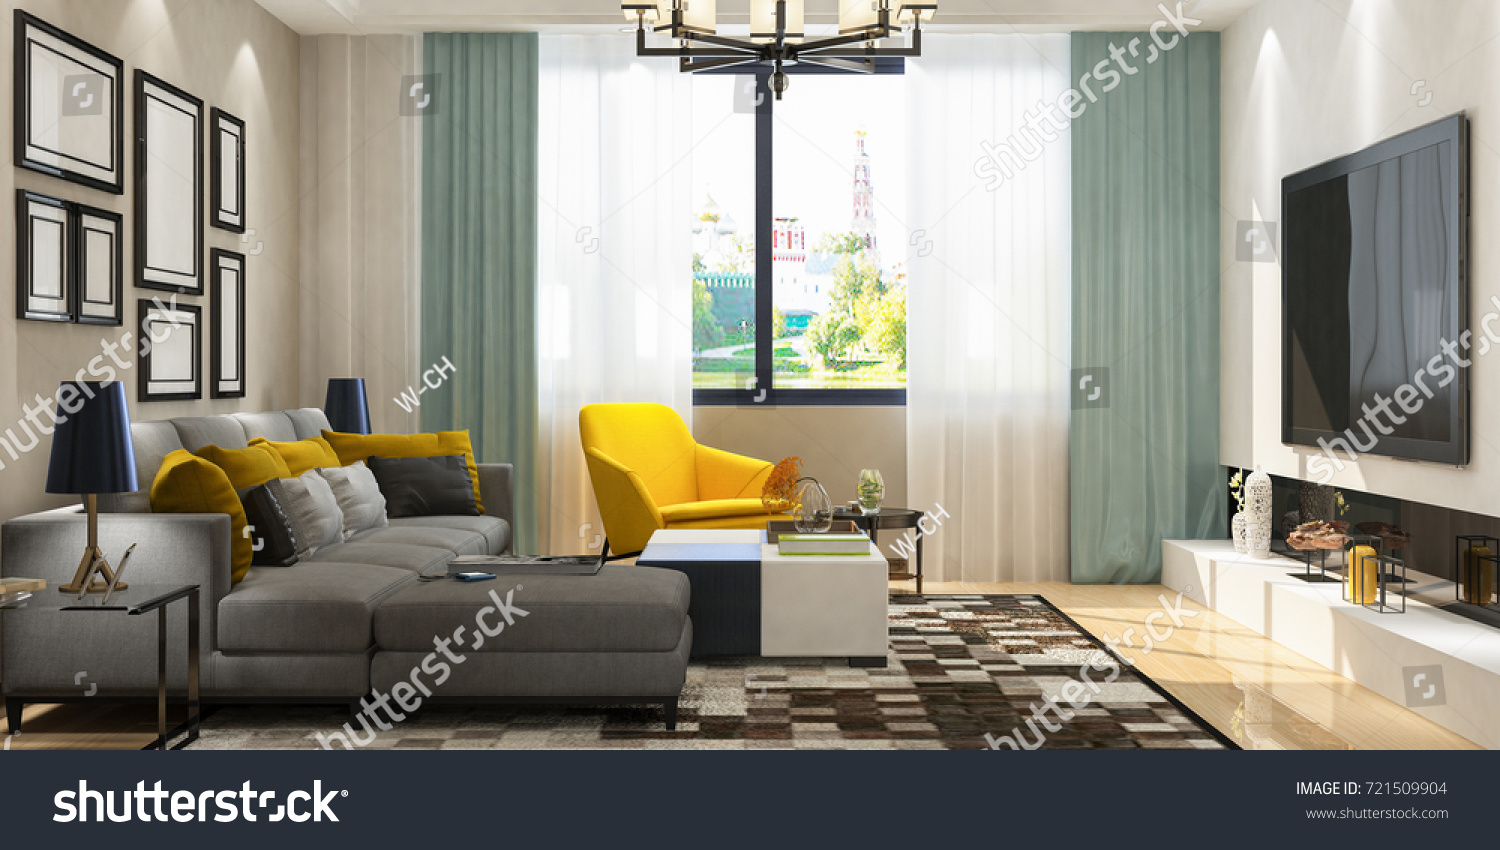 Modern living room perspective sofa set with multi picture frame on wall elevation